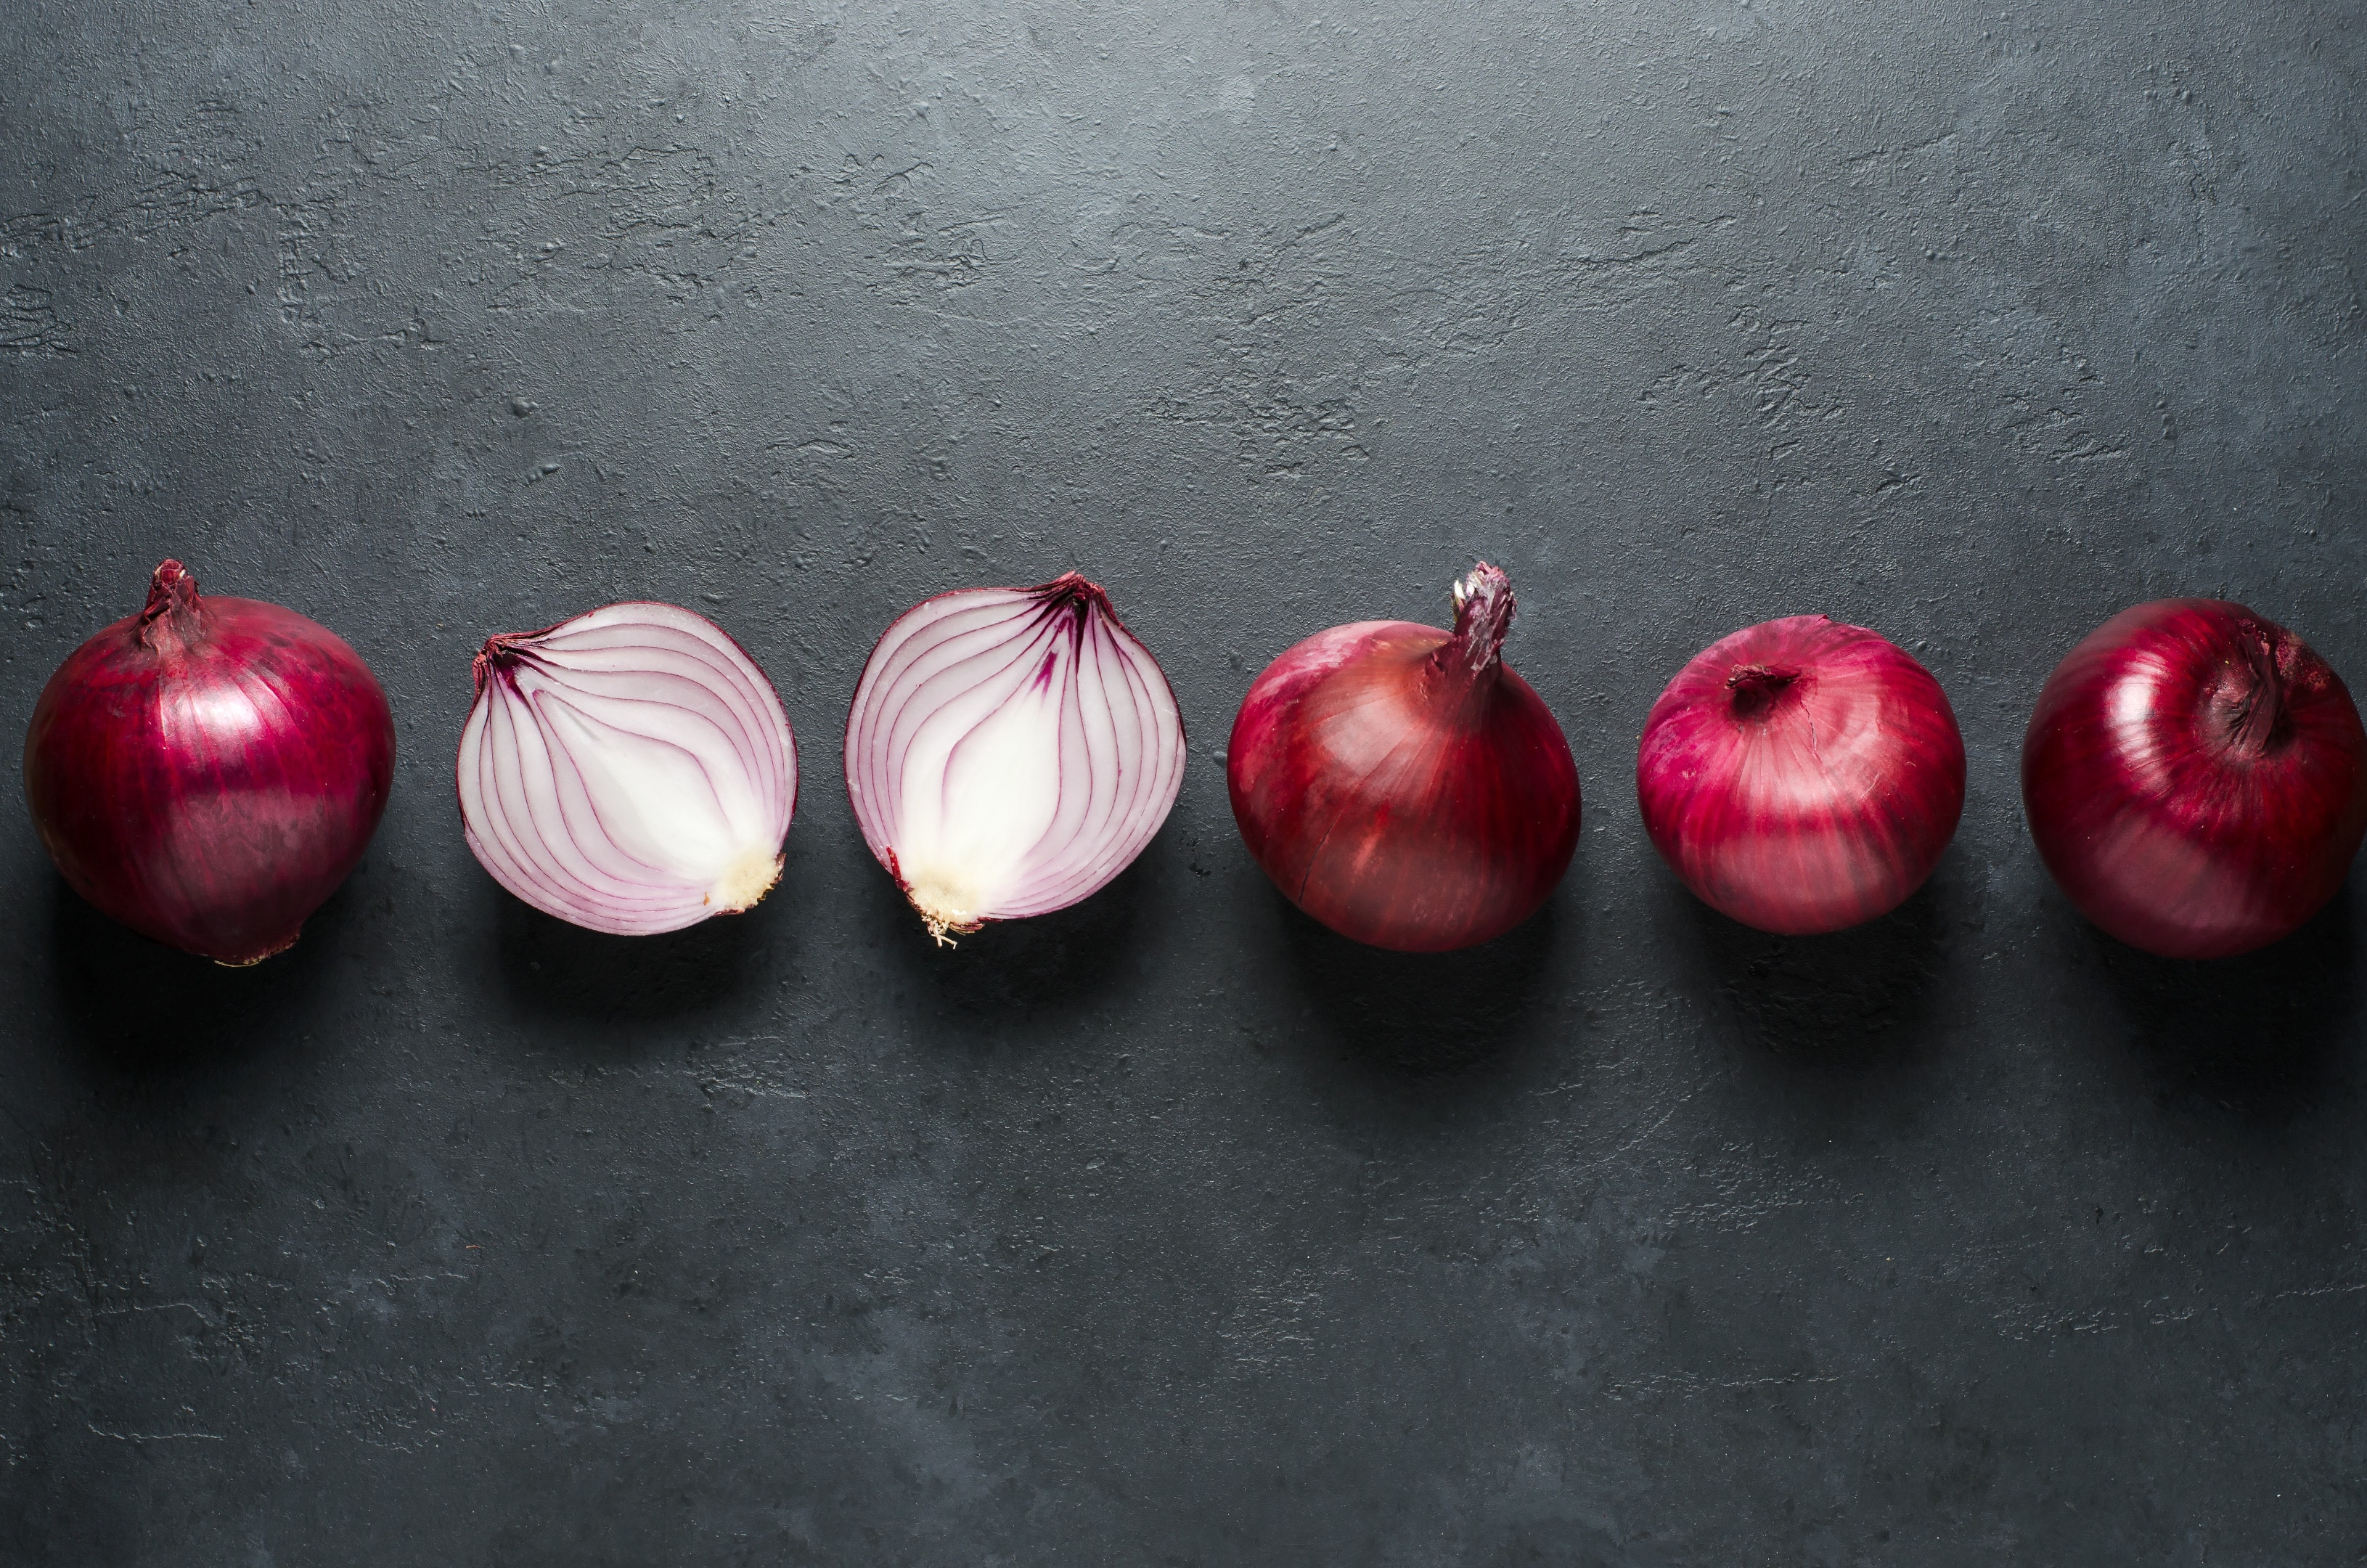 Red onion whole and sliced on black background